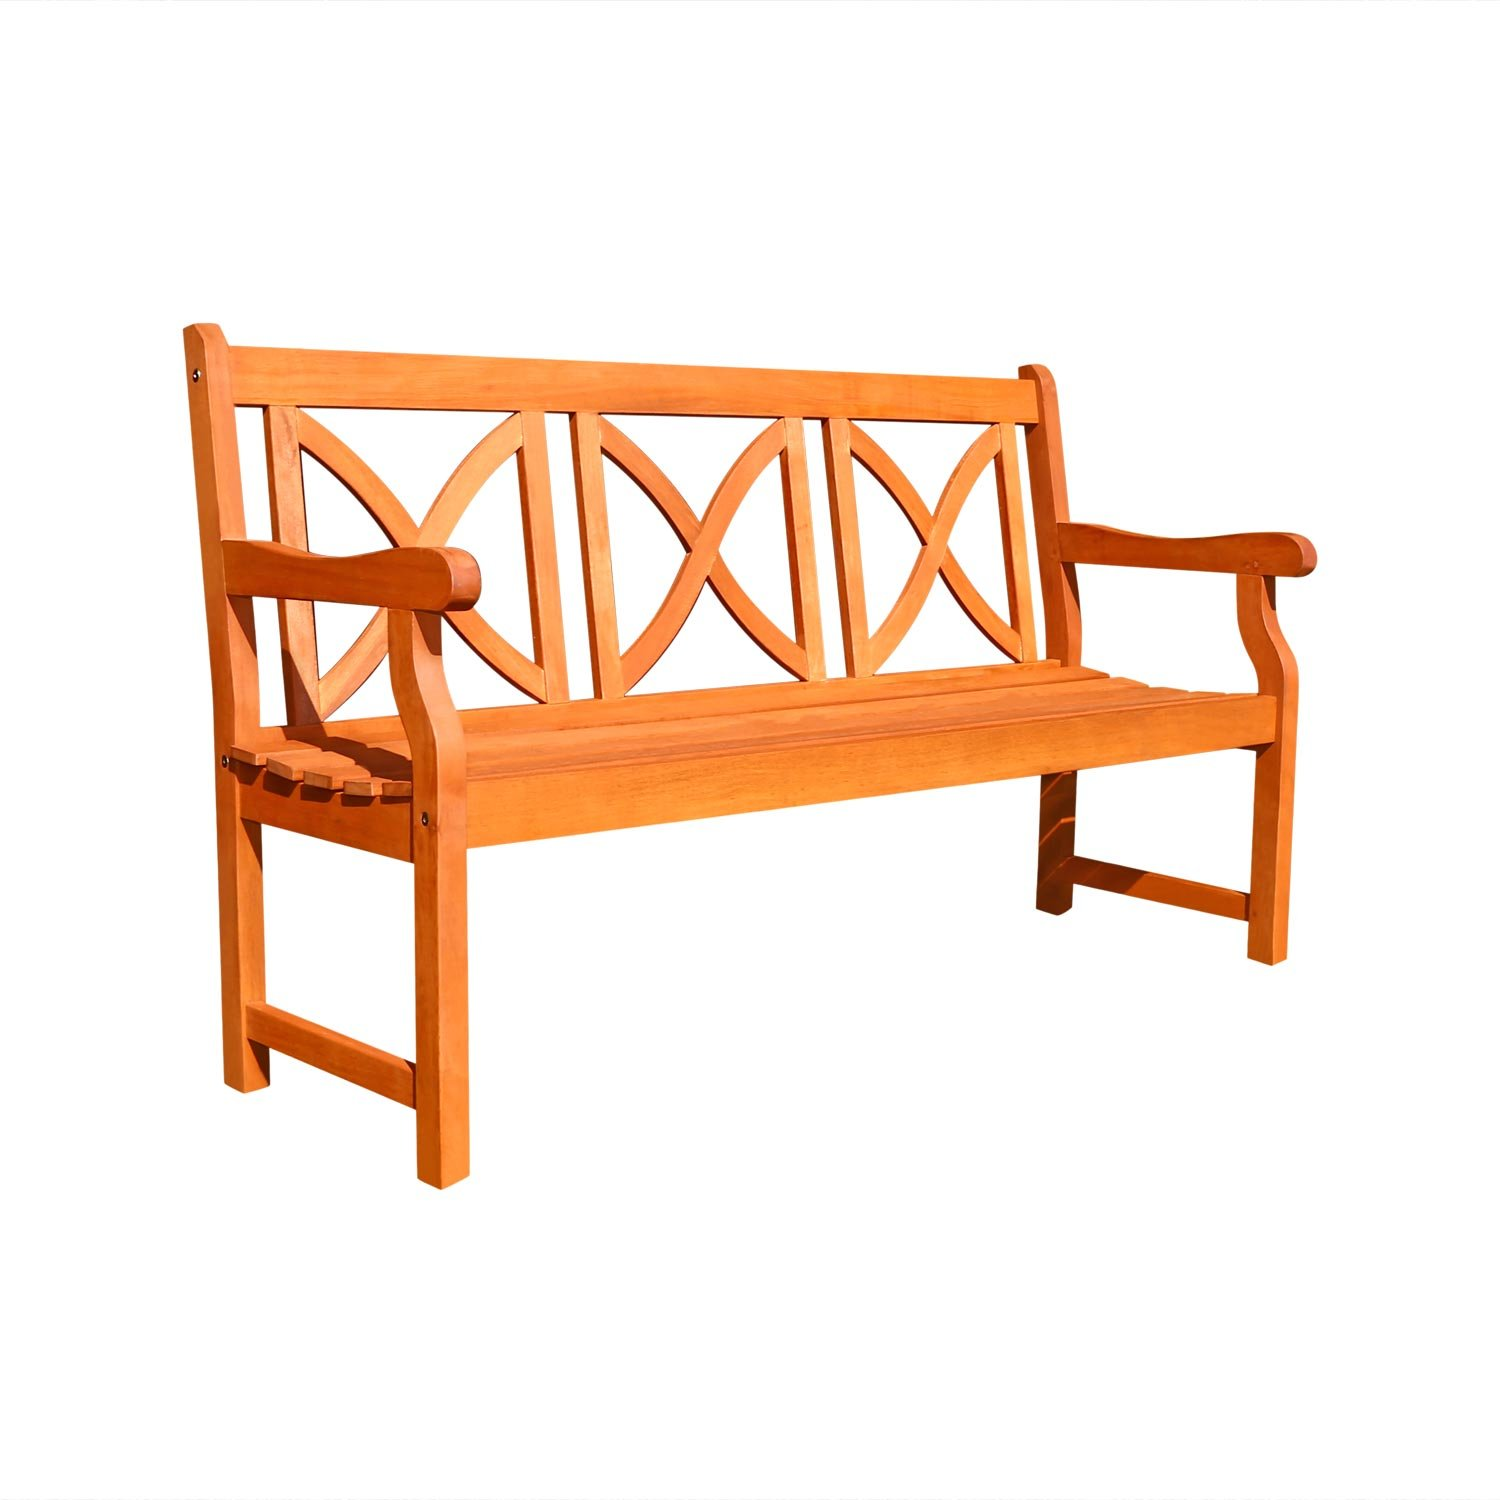 vifah v100 outdoor wood bench x back design natural wood finish 66 by